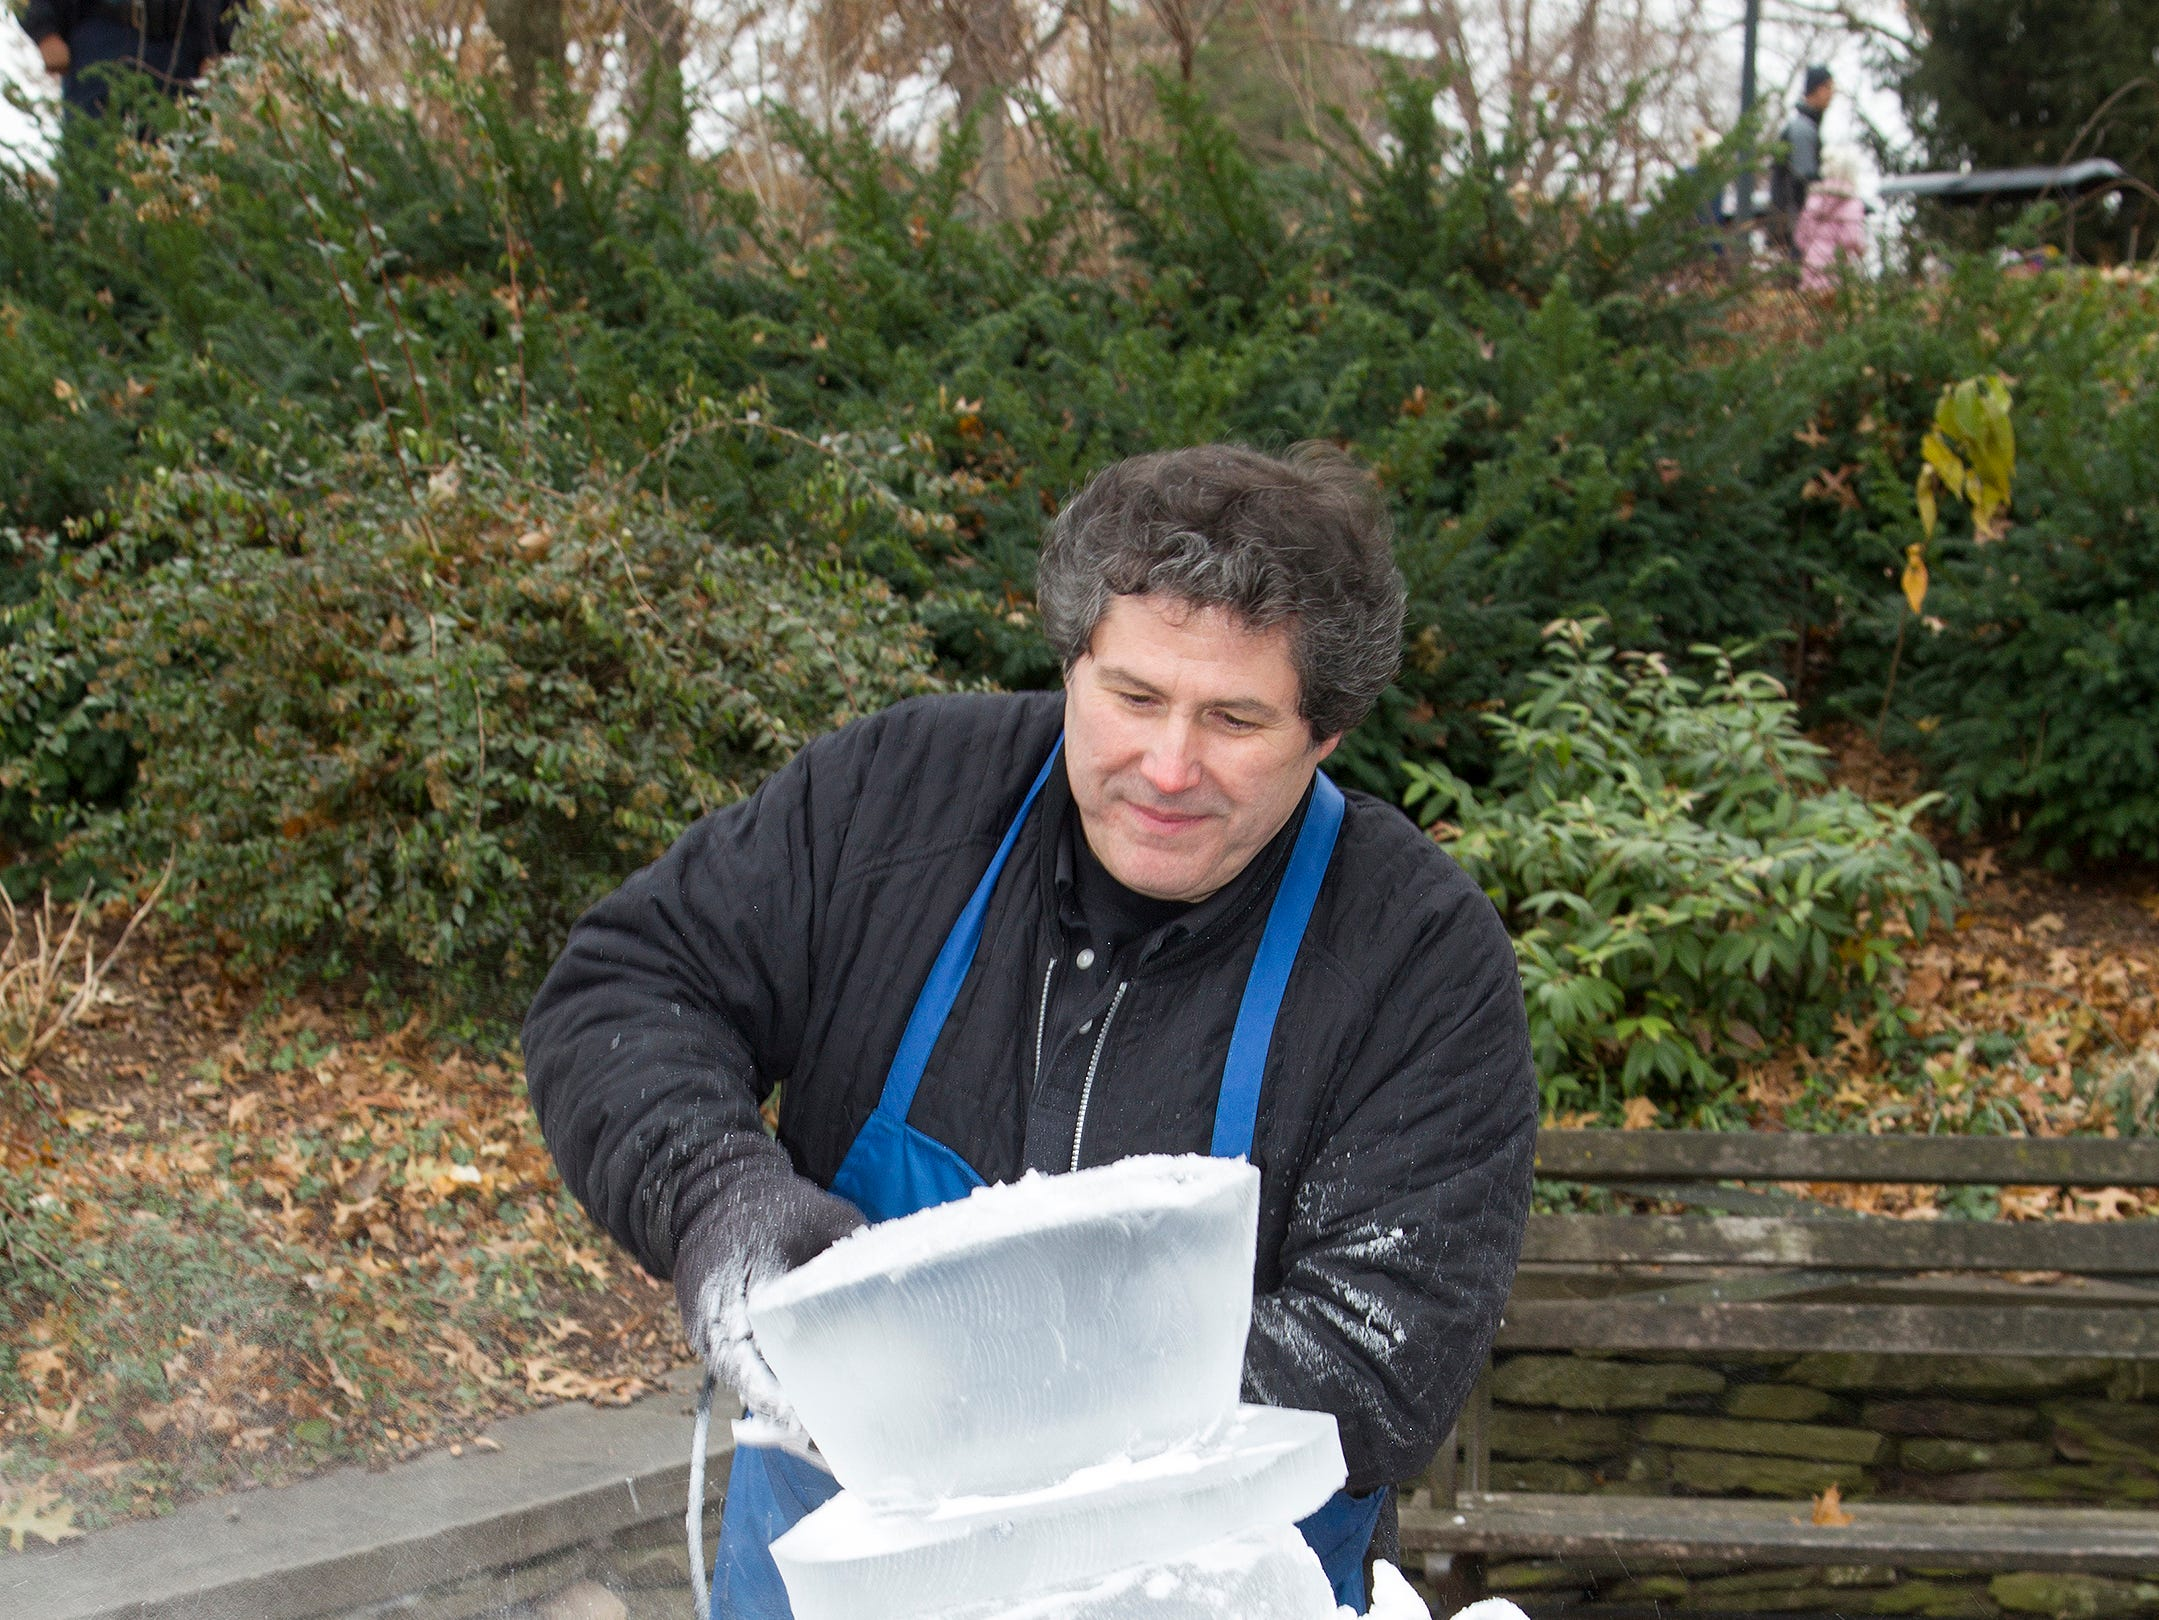 Ice Sculpting. The Ridgewood Guild sponsors Winter Fest at Van Neste Park in Ridgewood. 11/24/2018